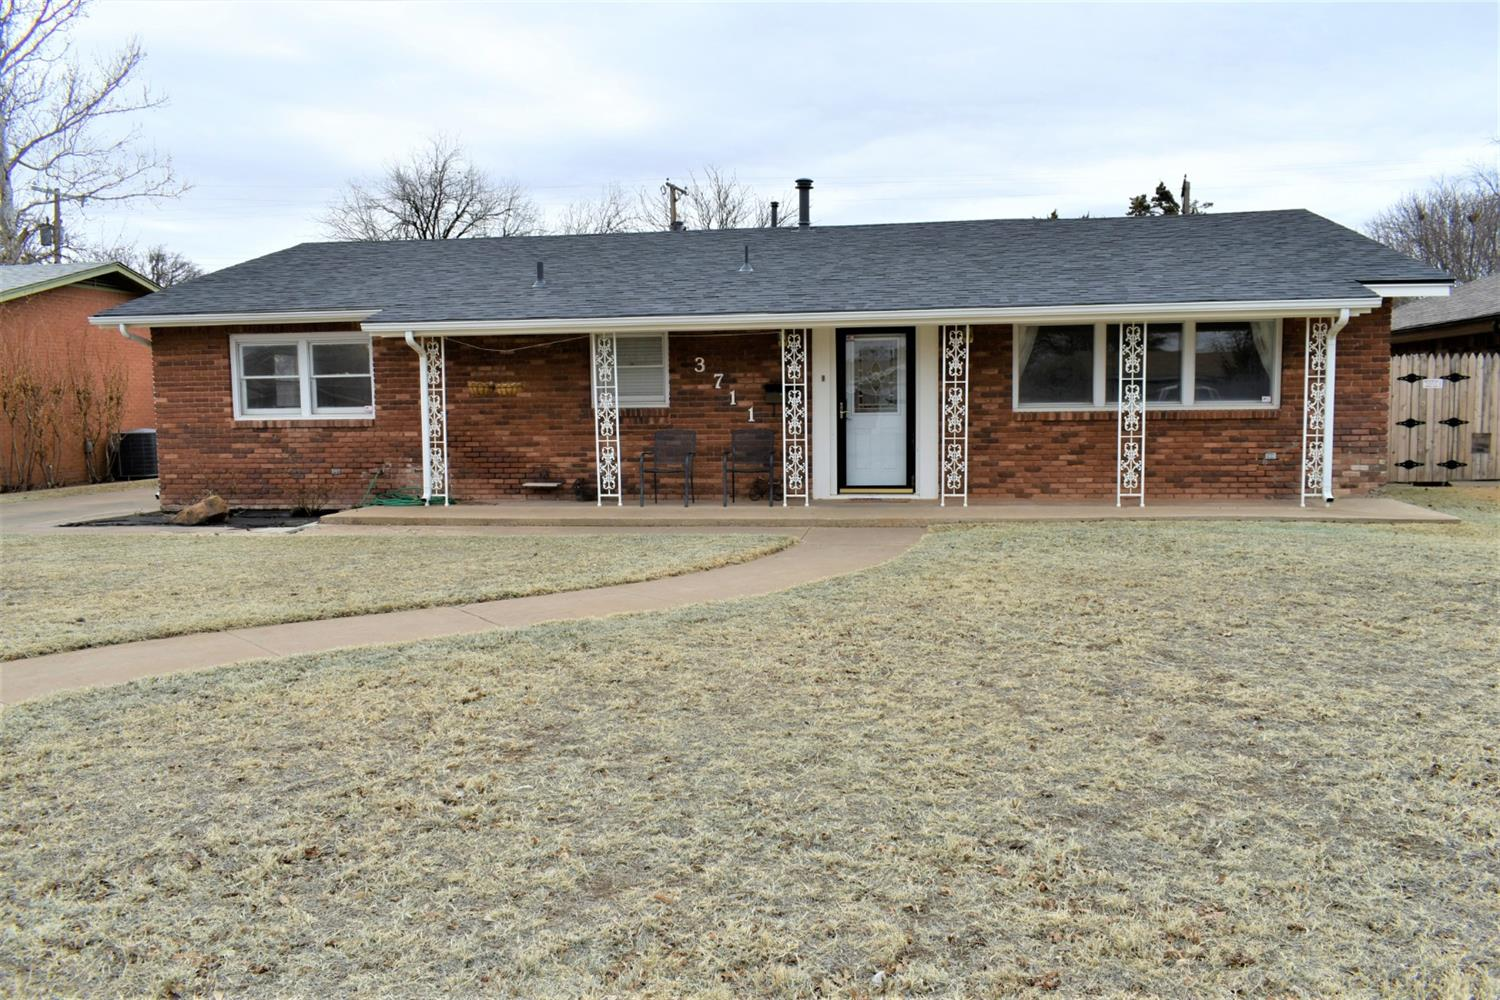 Fabulous home with nice large front porch, newer windows, and has no paint siding!  Basement!  Recent flooring and paint!  Two living areas!  Rear entry garage!  Large patio area!  Sprinkler and security system!  Home Warranty for new buyer!  Better hurry!